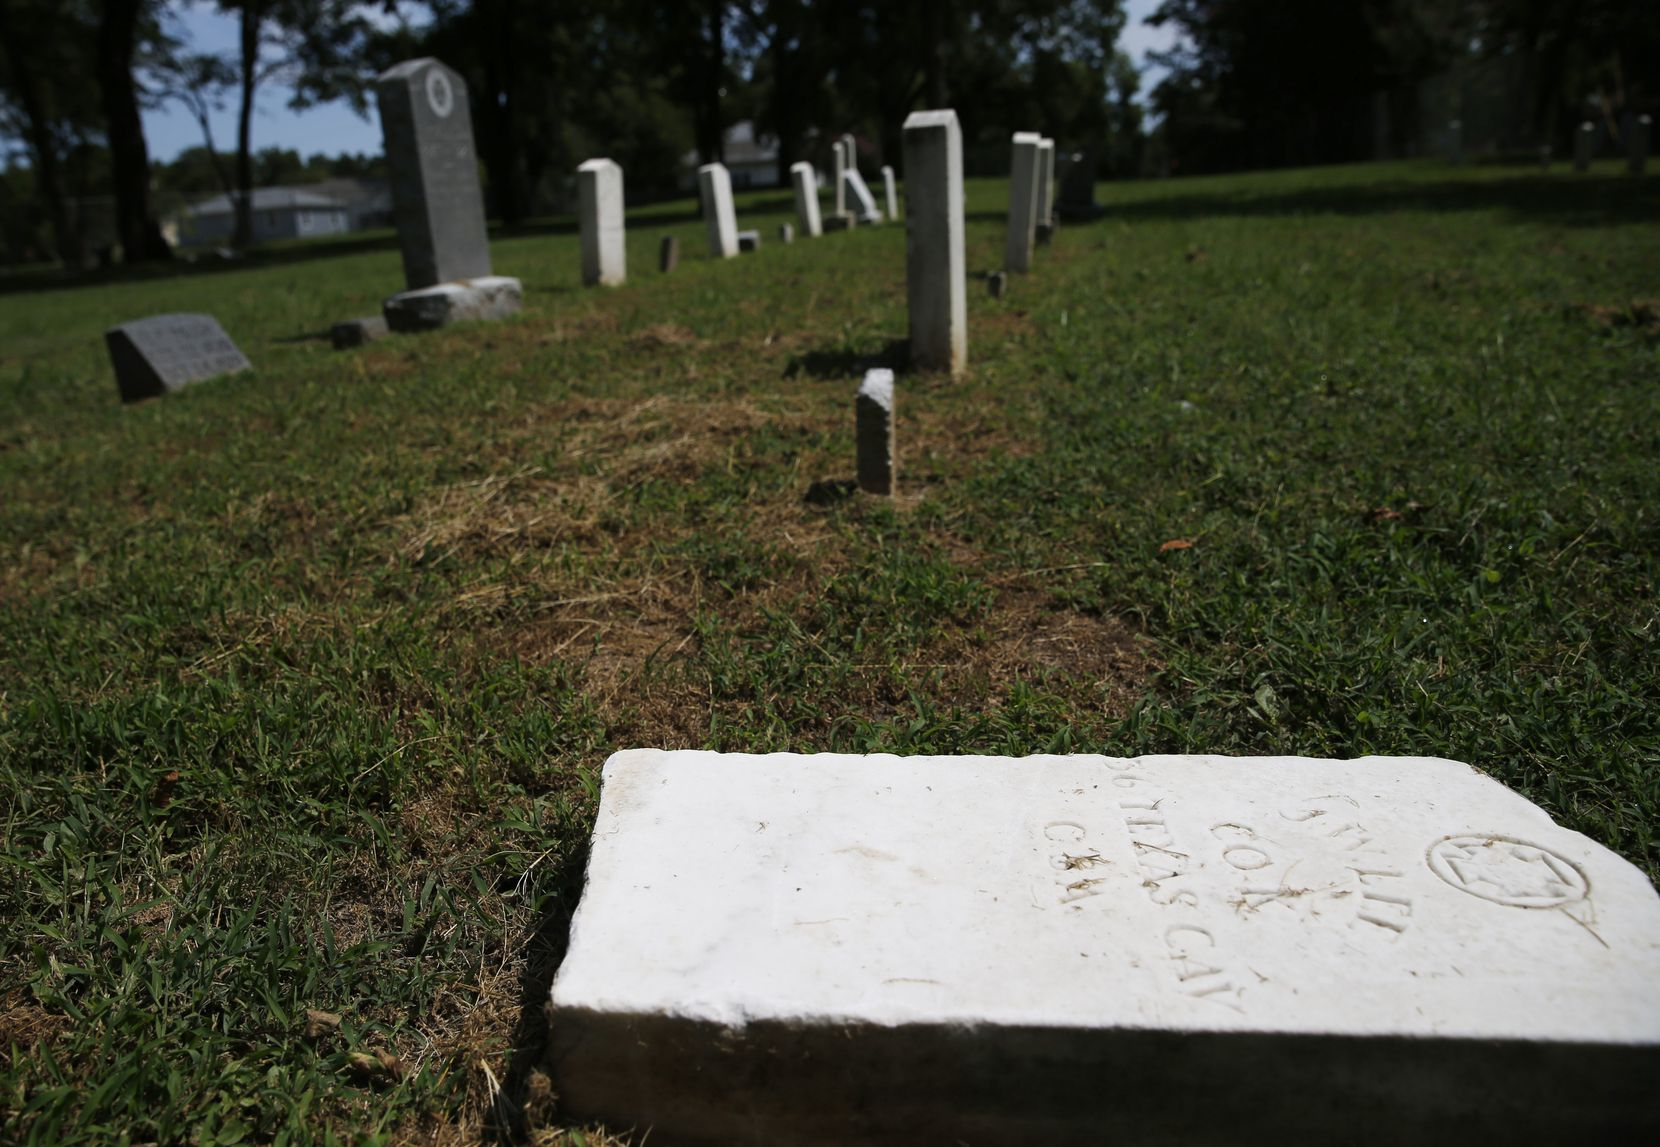 The Dallas chapter of the United Daughters of the Confederacy played a role in creating the Confederate Cemetery, records indicate.